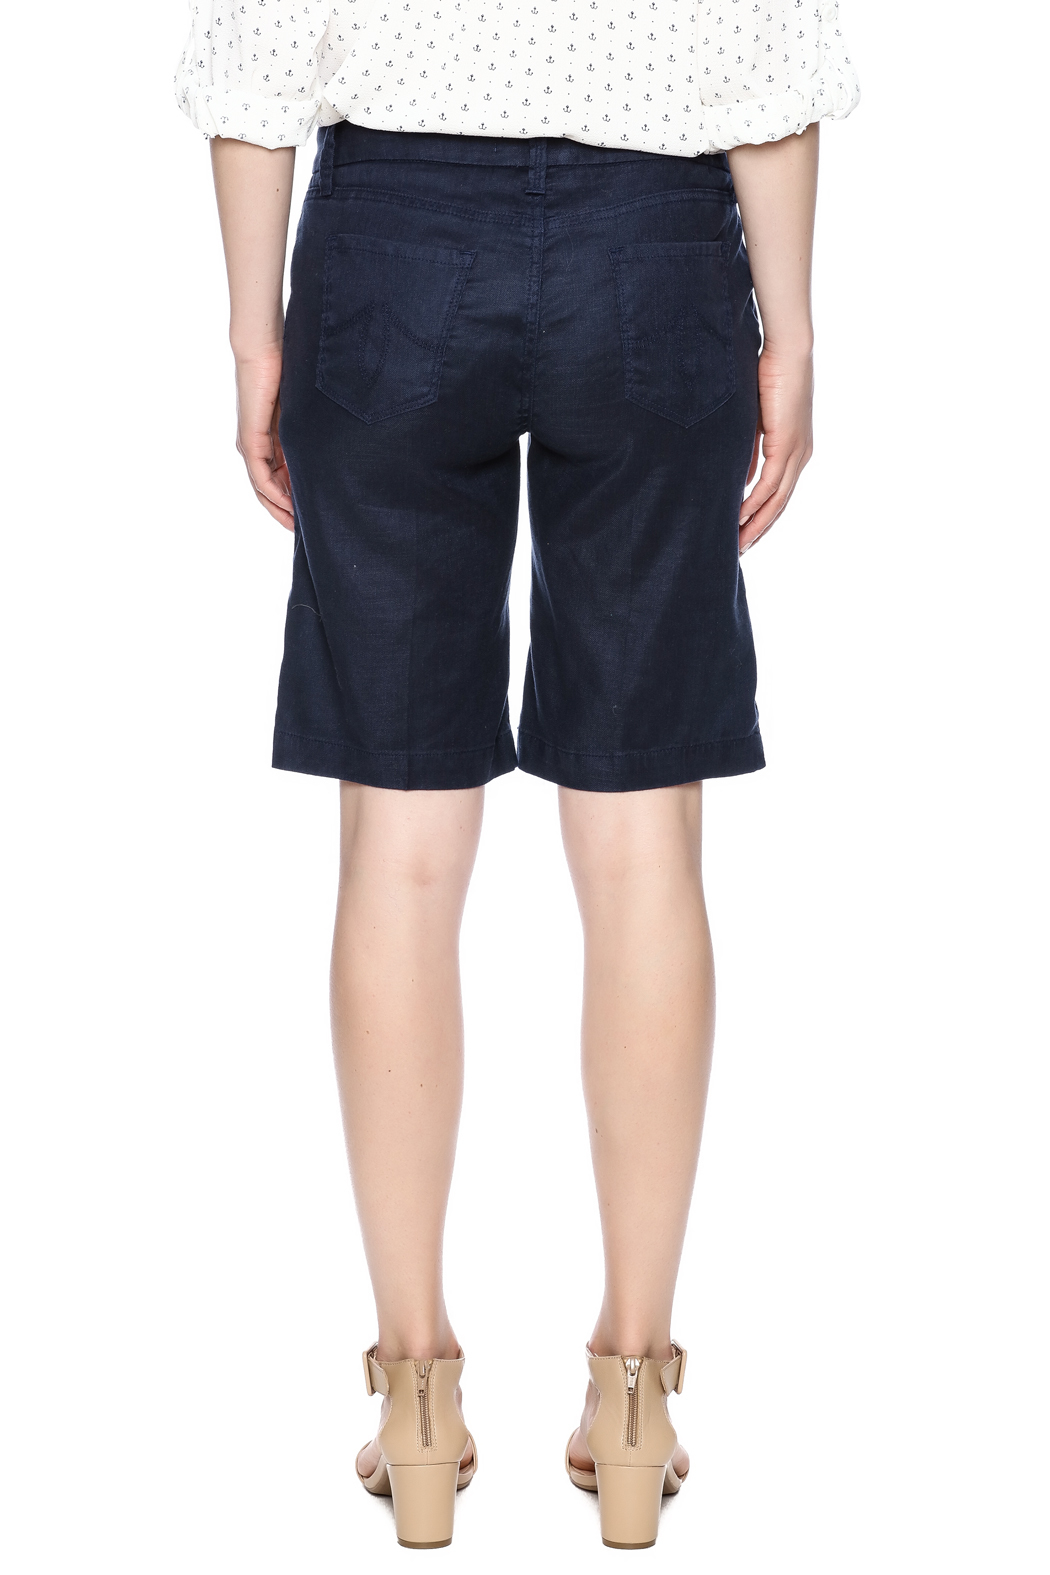 level 99 walking shorts from california by envie shoptiques